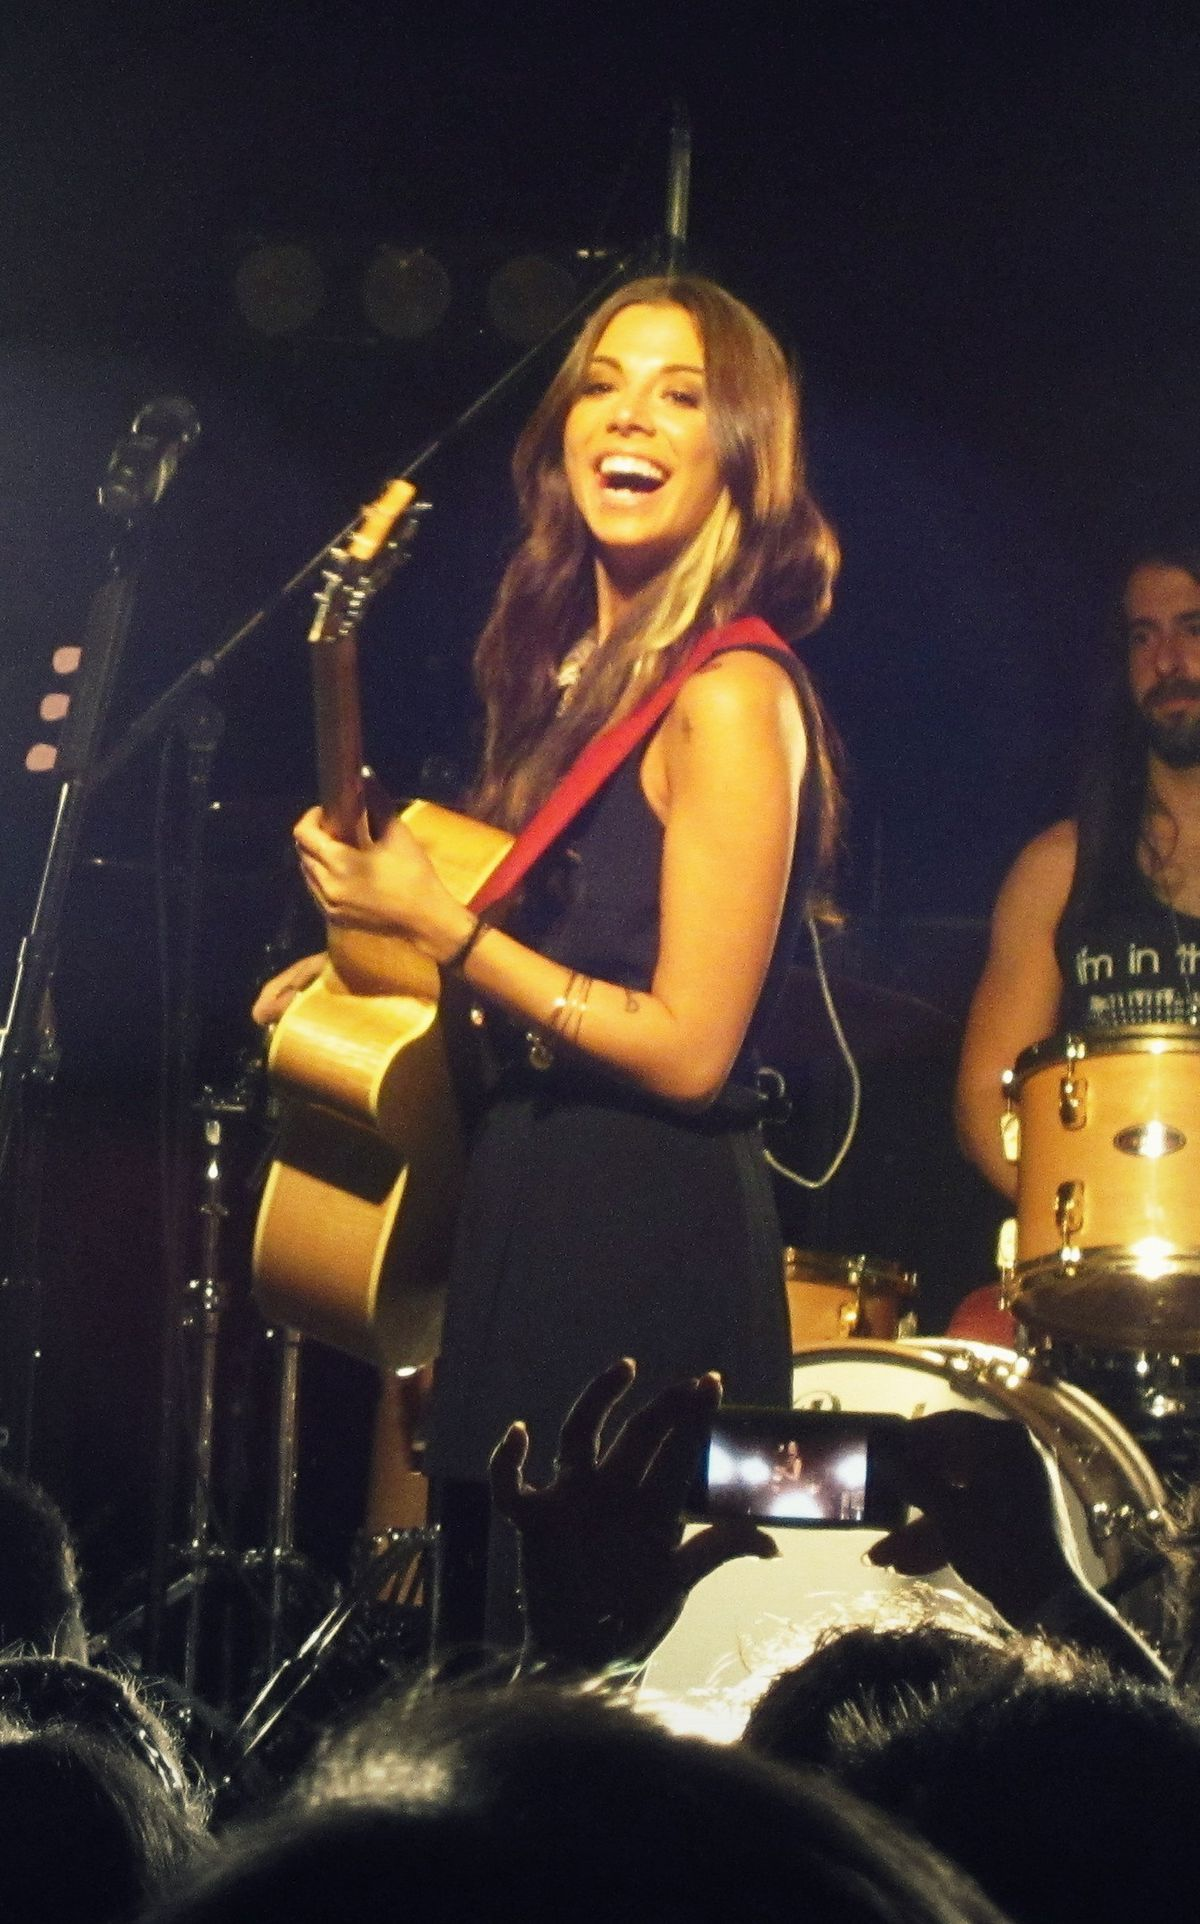 christina perri 2008 - photo #5